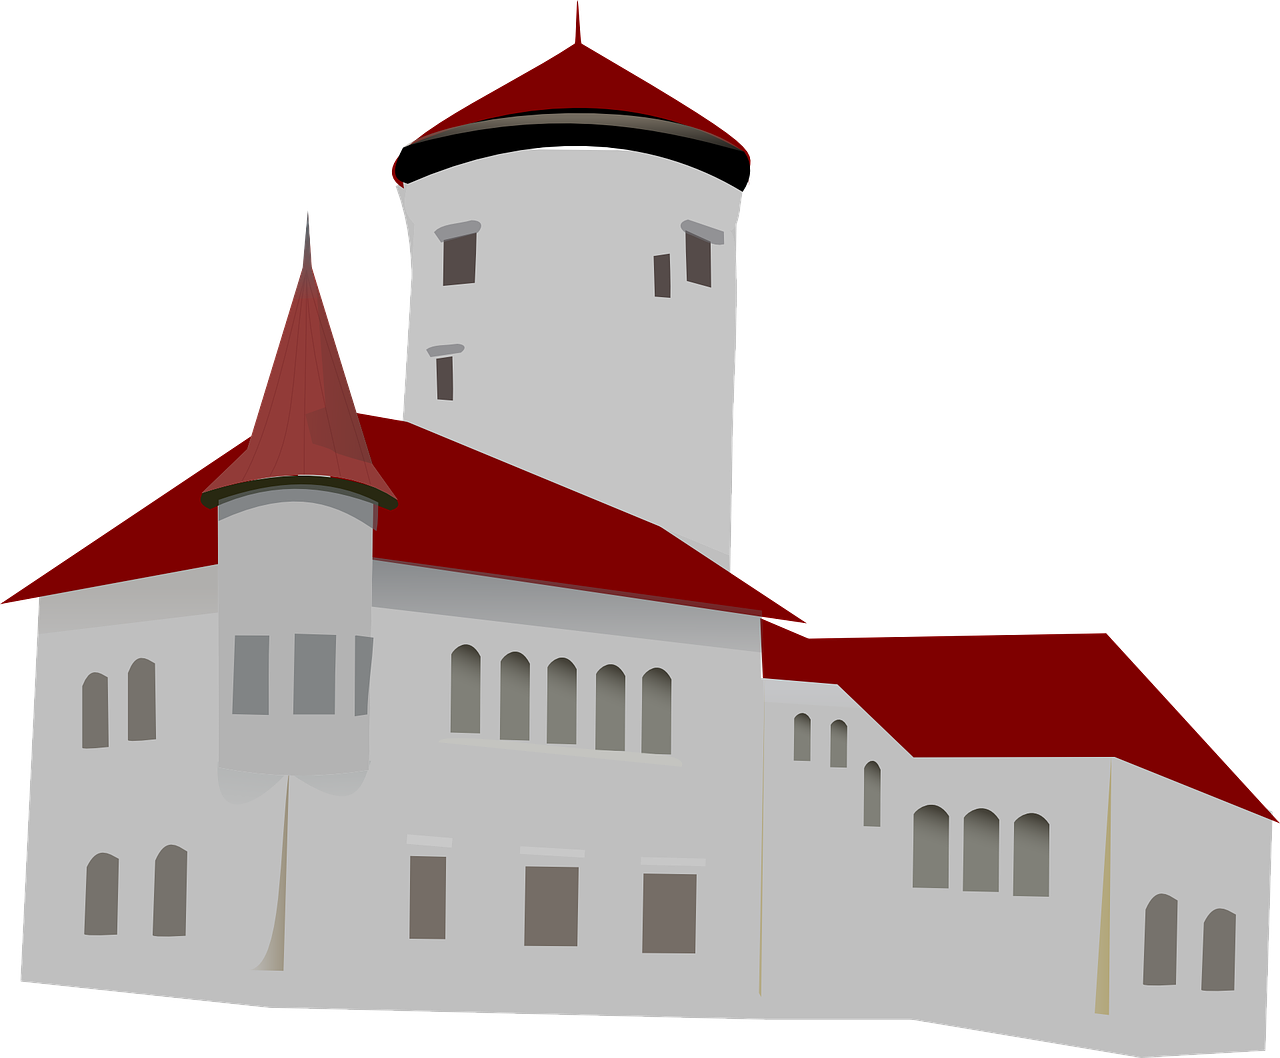 1280x1058 House Monastery Church Clip Art